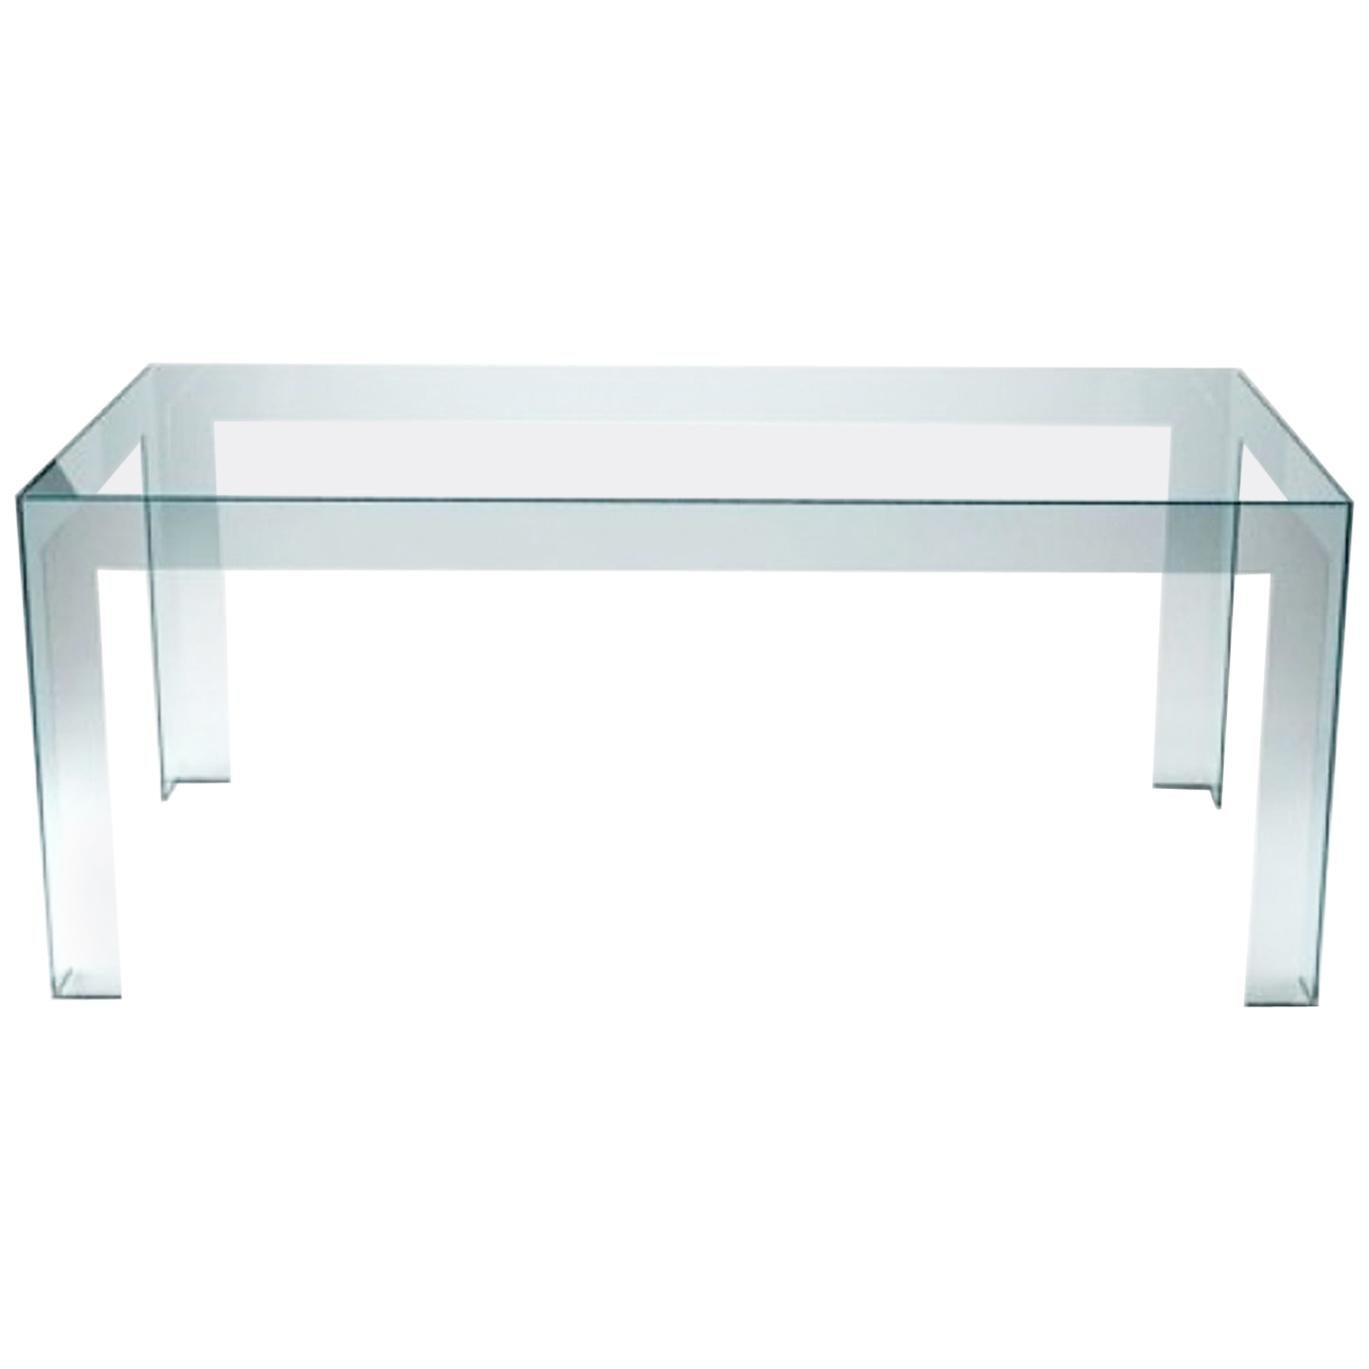 Italian Contemporary Design Clear Glass Dining Table in Minimal Style